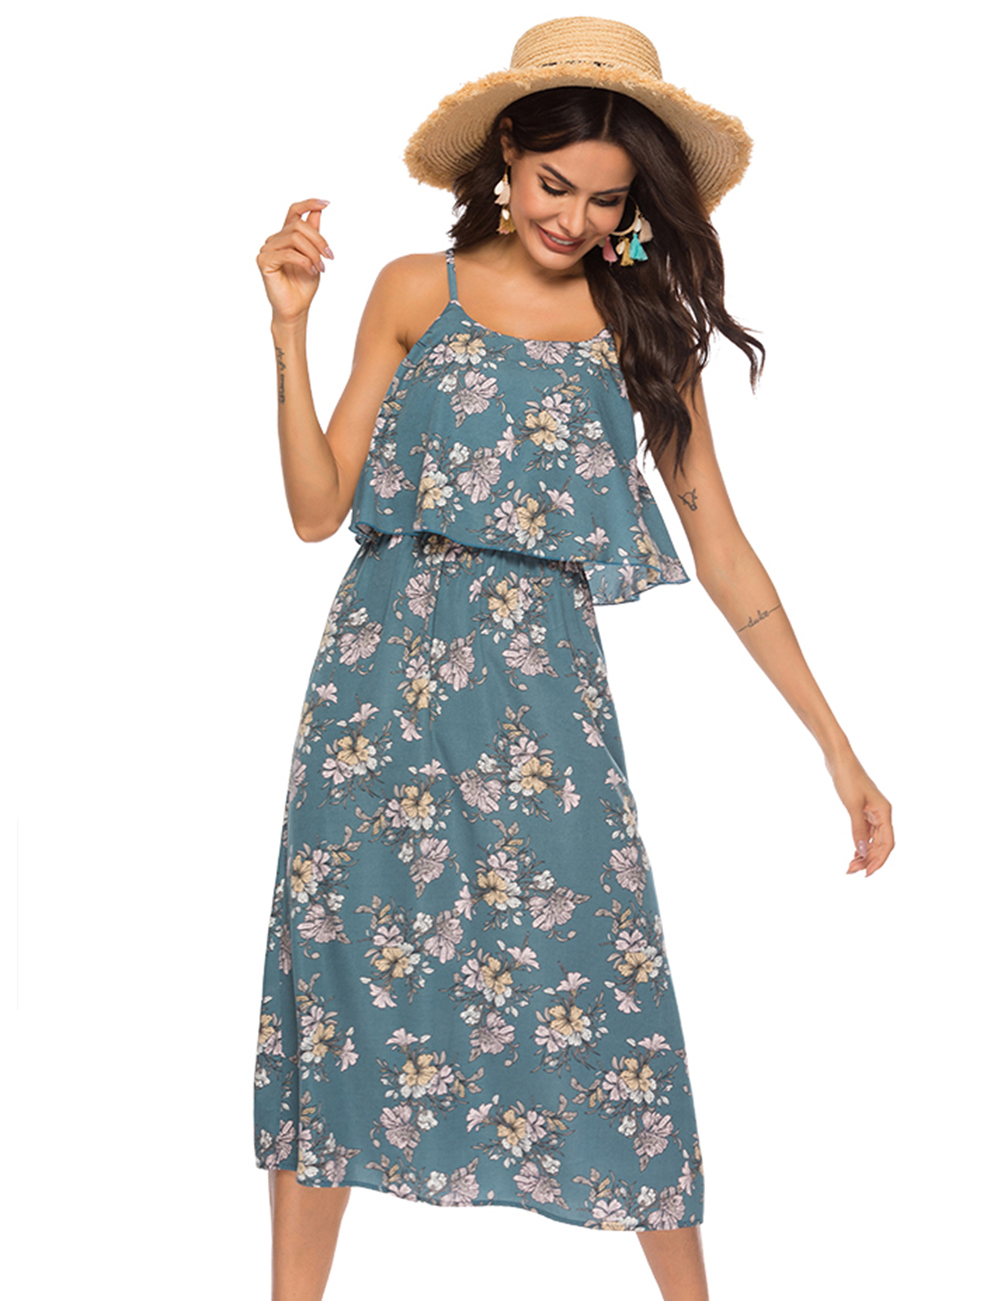 //cdn.affectcloud.com/feelingirldress/upload/imgs/2019-06-04/VZ190494-BU1/VZ190494-BU1.jpg